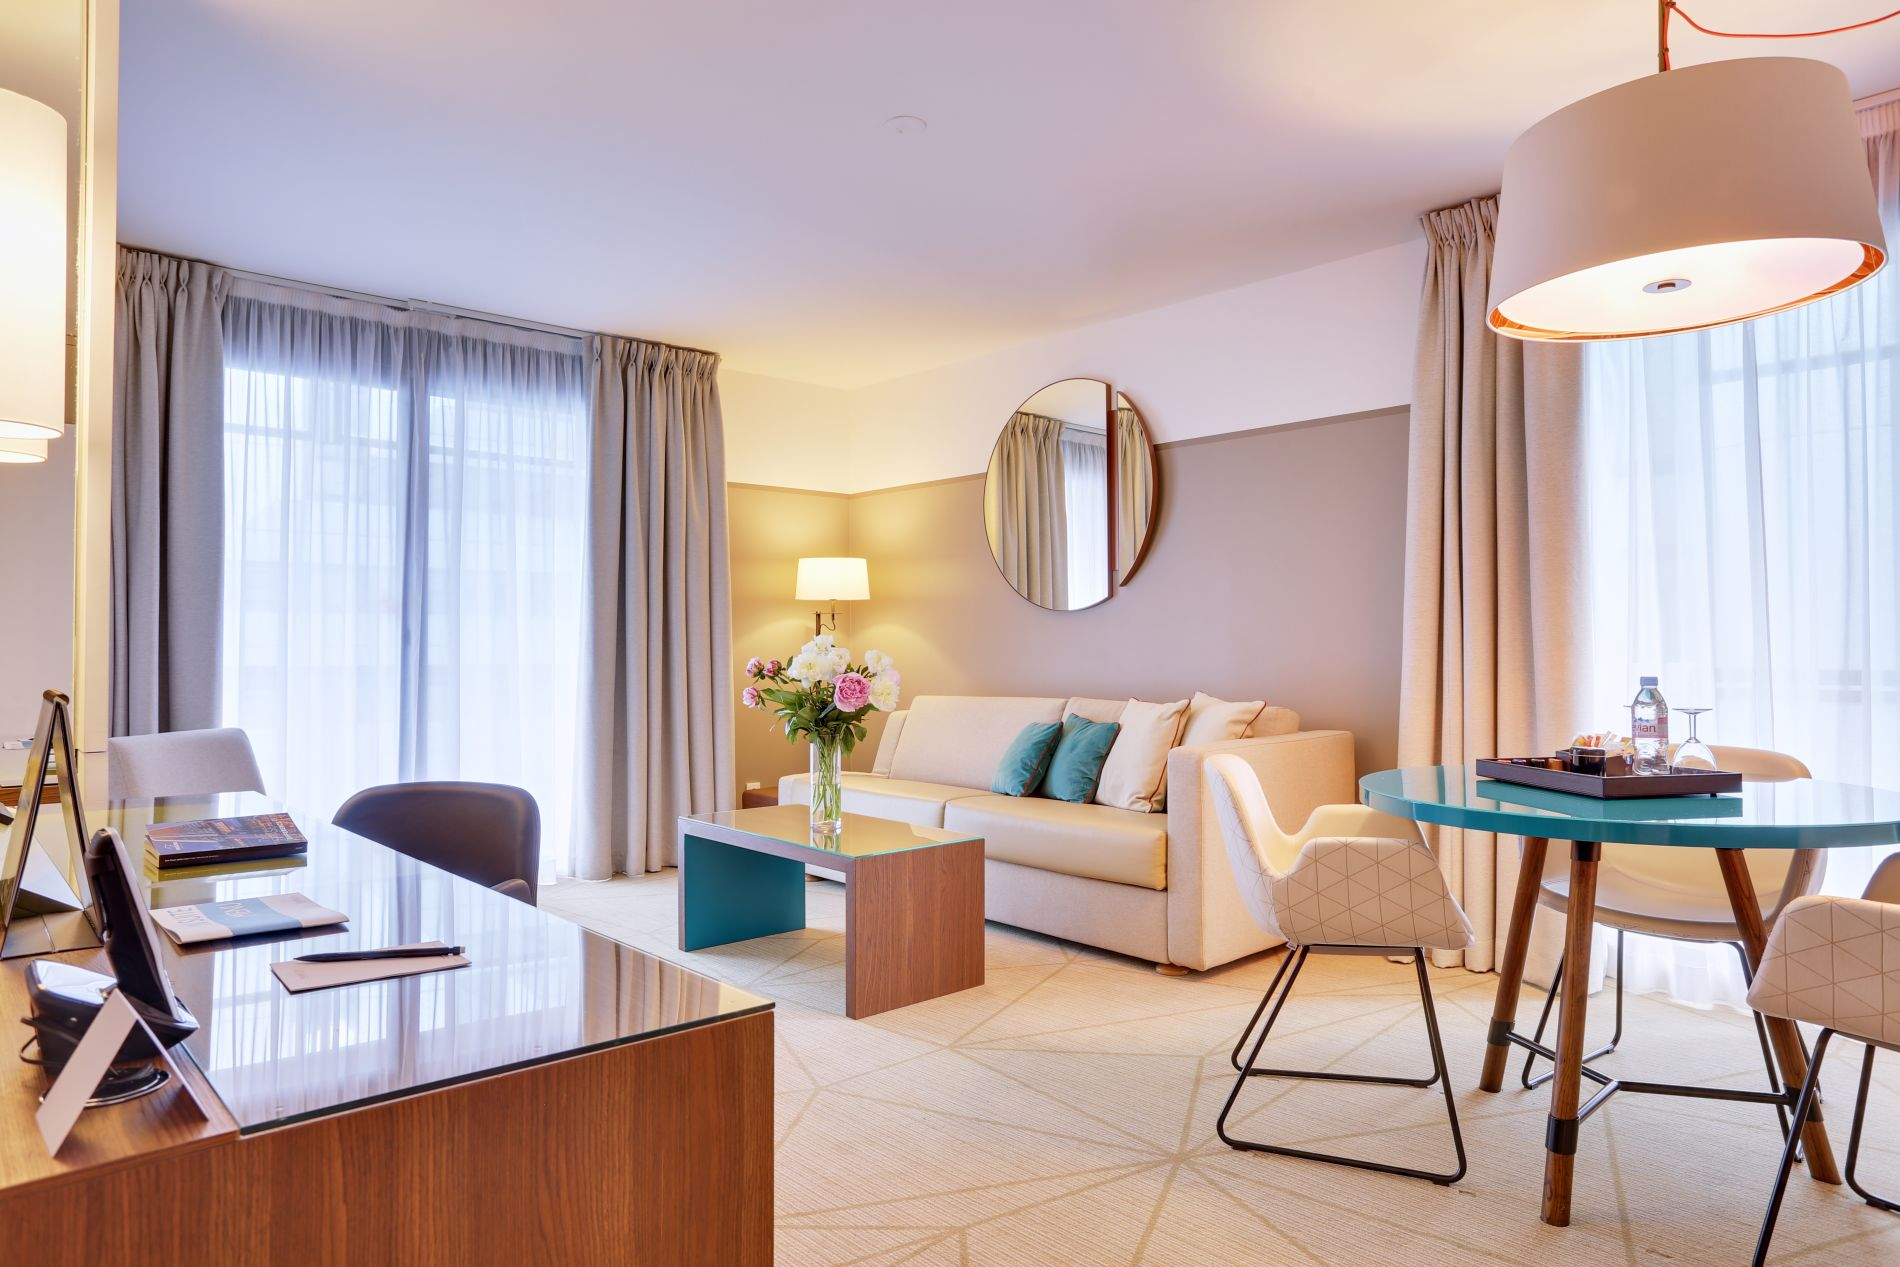 Serviced accommodation that allows pets in La Defense business district of Paris